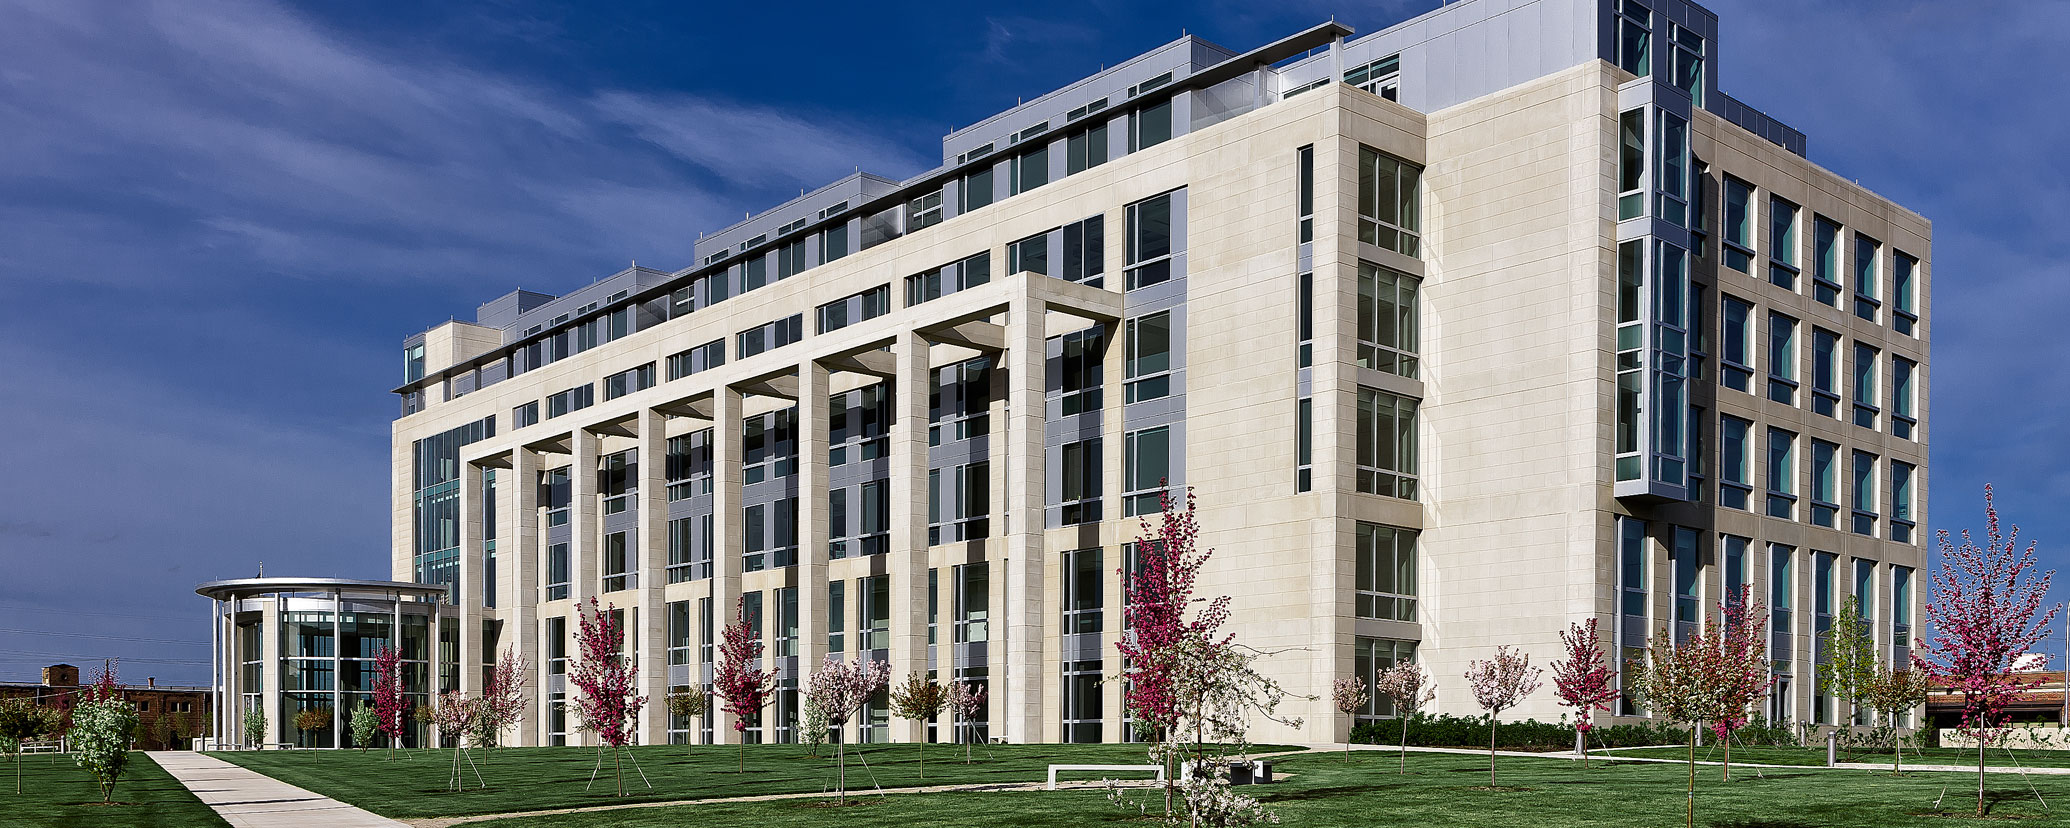 Caddell Construction - U.S. Courthouse Rockford, IL